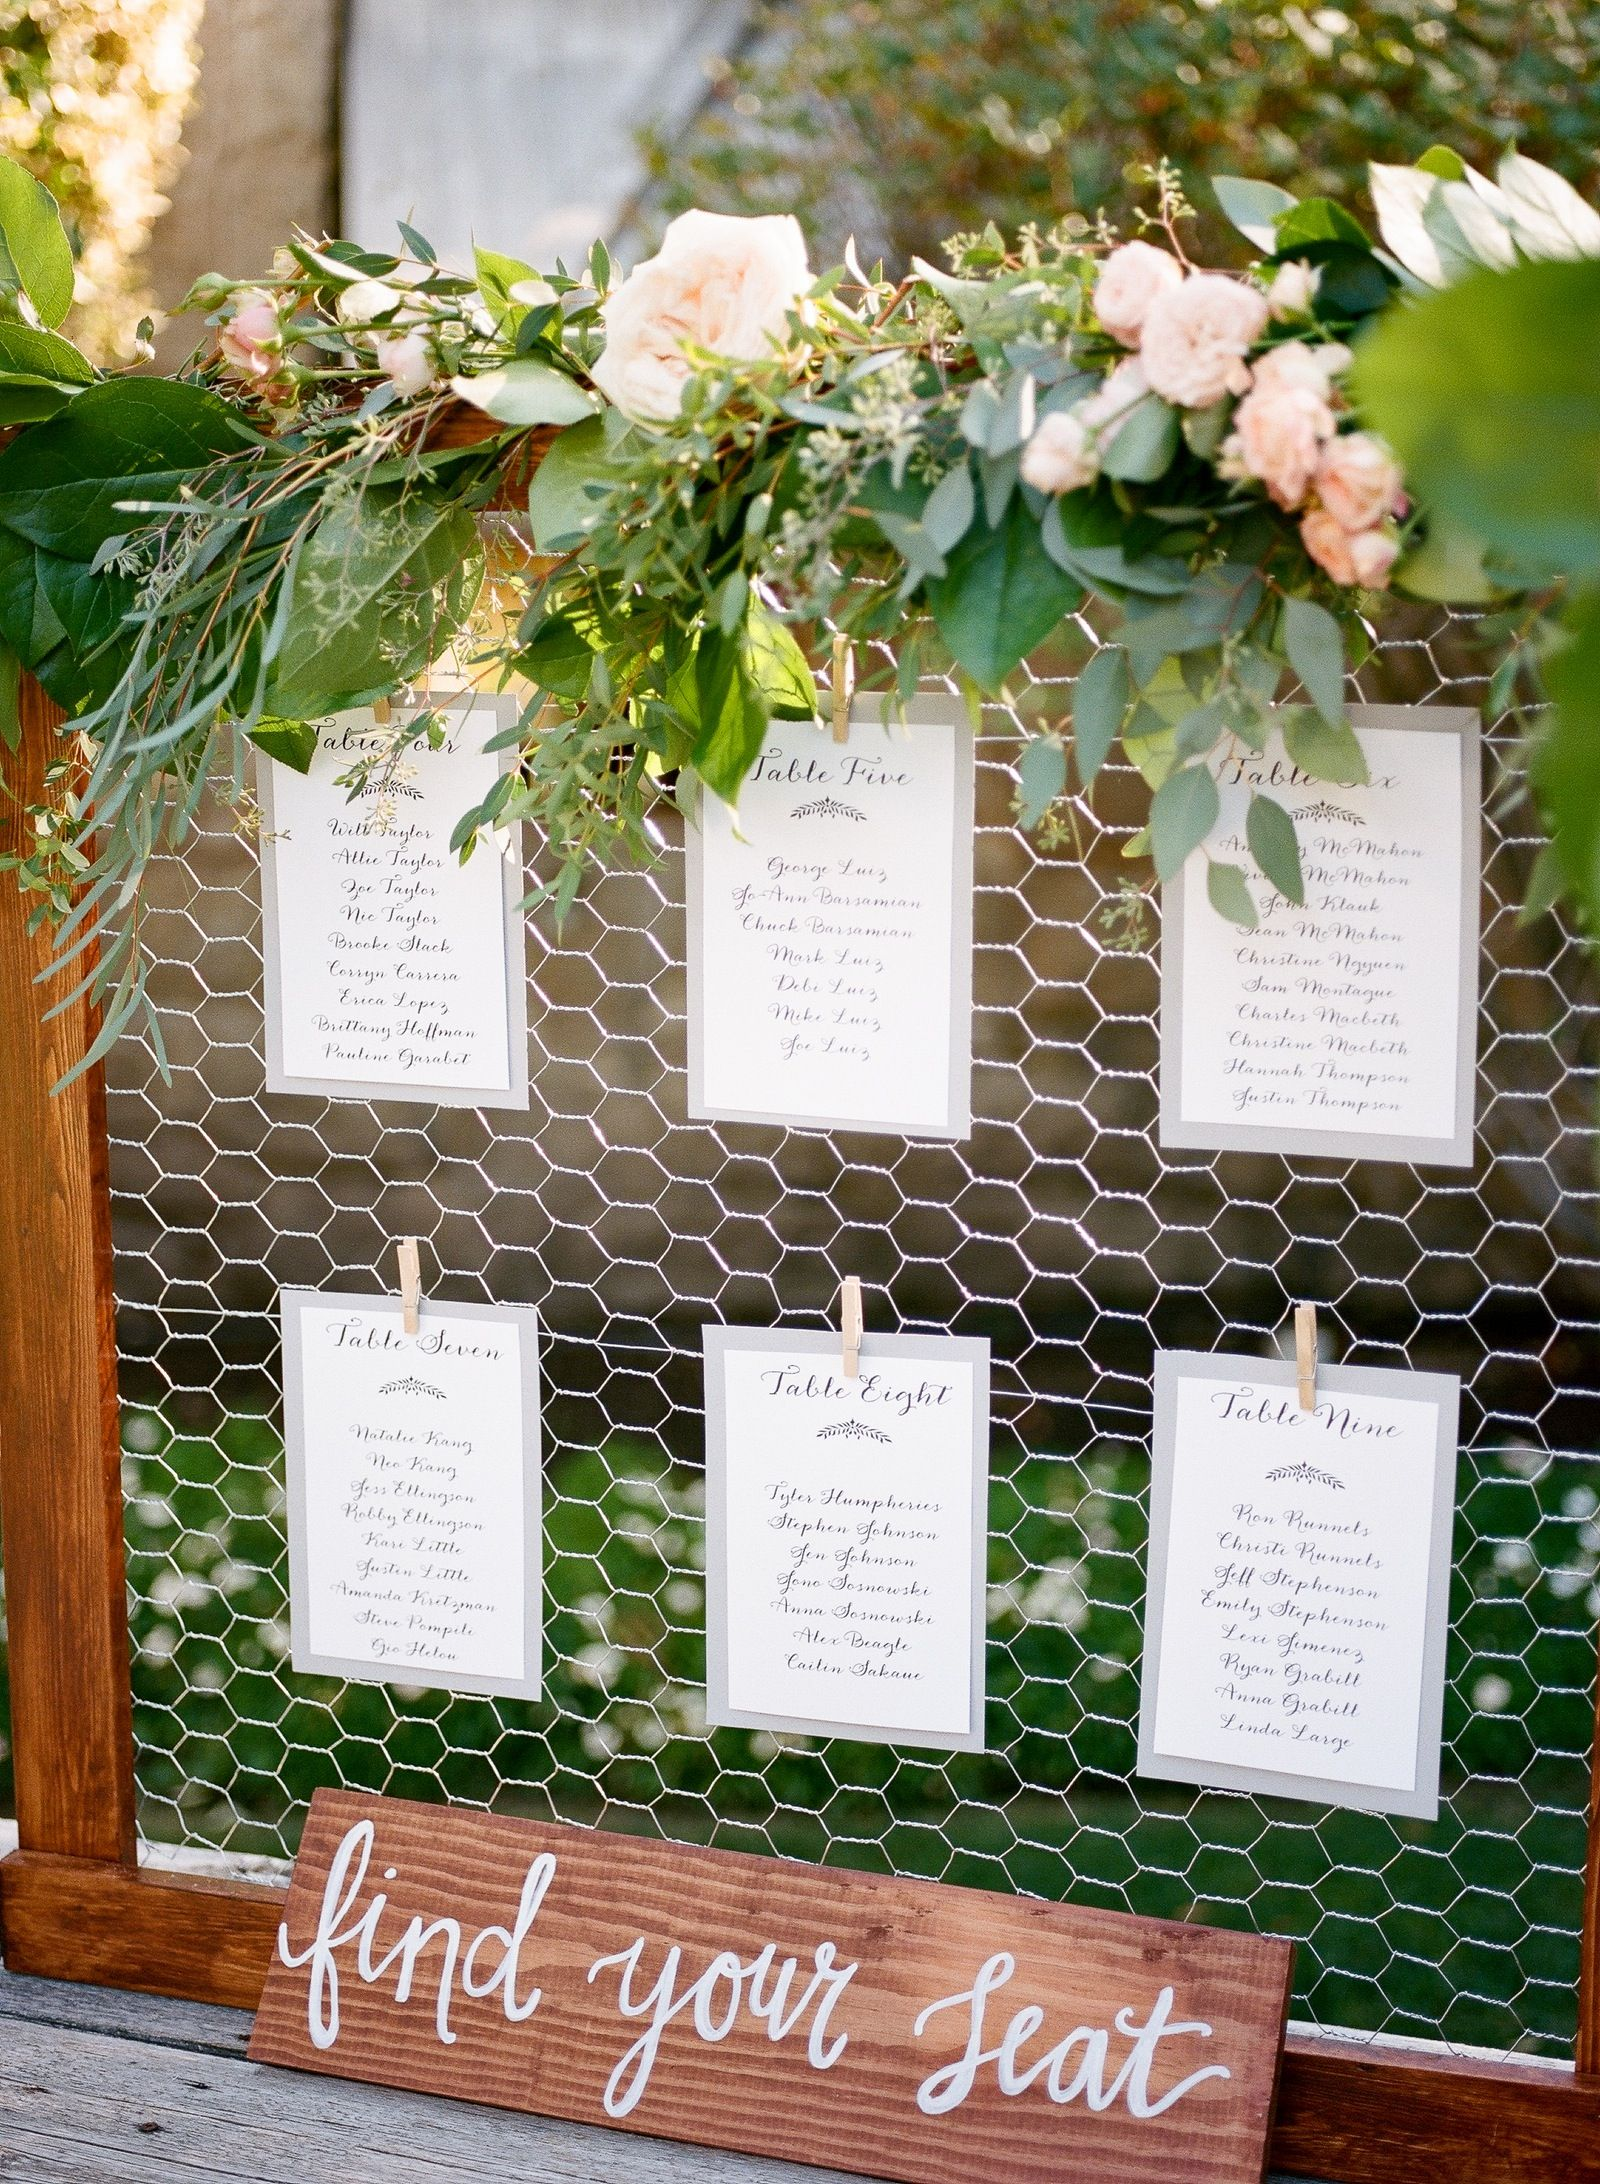 backyard wedding decor hacks for the most instaworthy nuptials